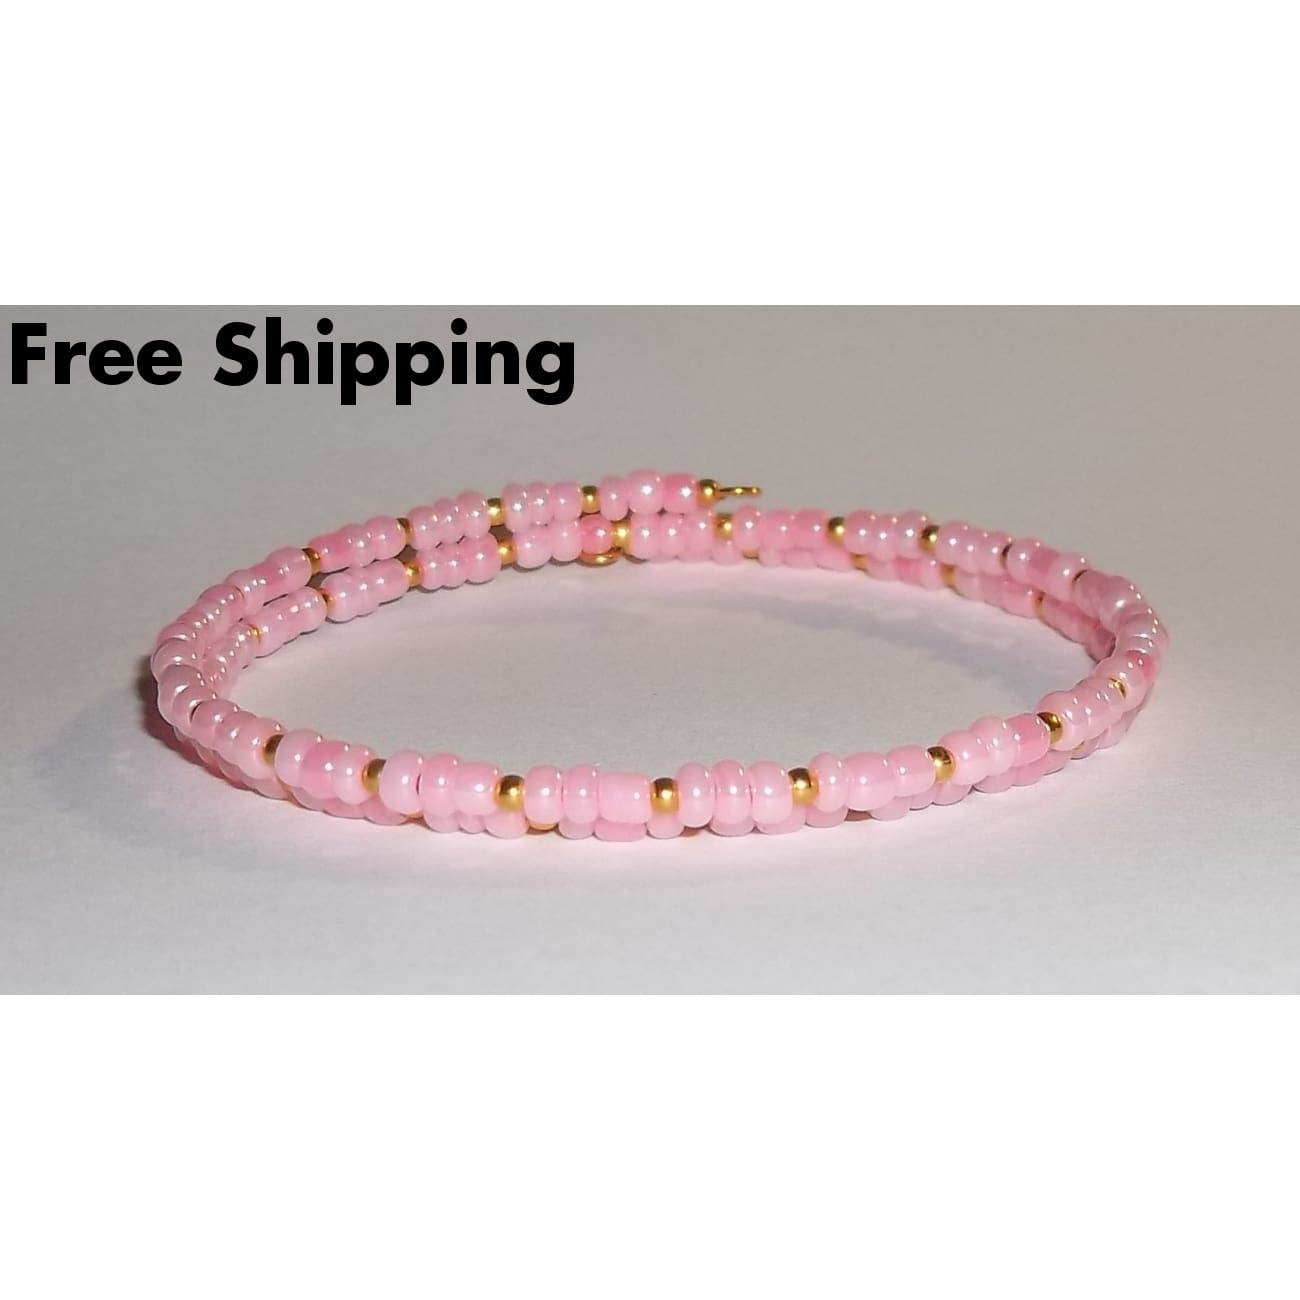 Light Pink & Gold Glass Beaded Artisan Crafted Stackable Wrap Bracelet (S-M) - New Arrival